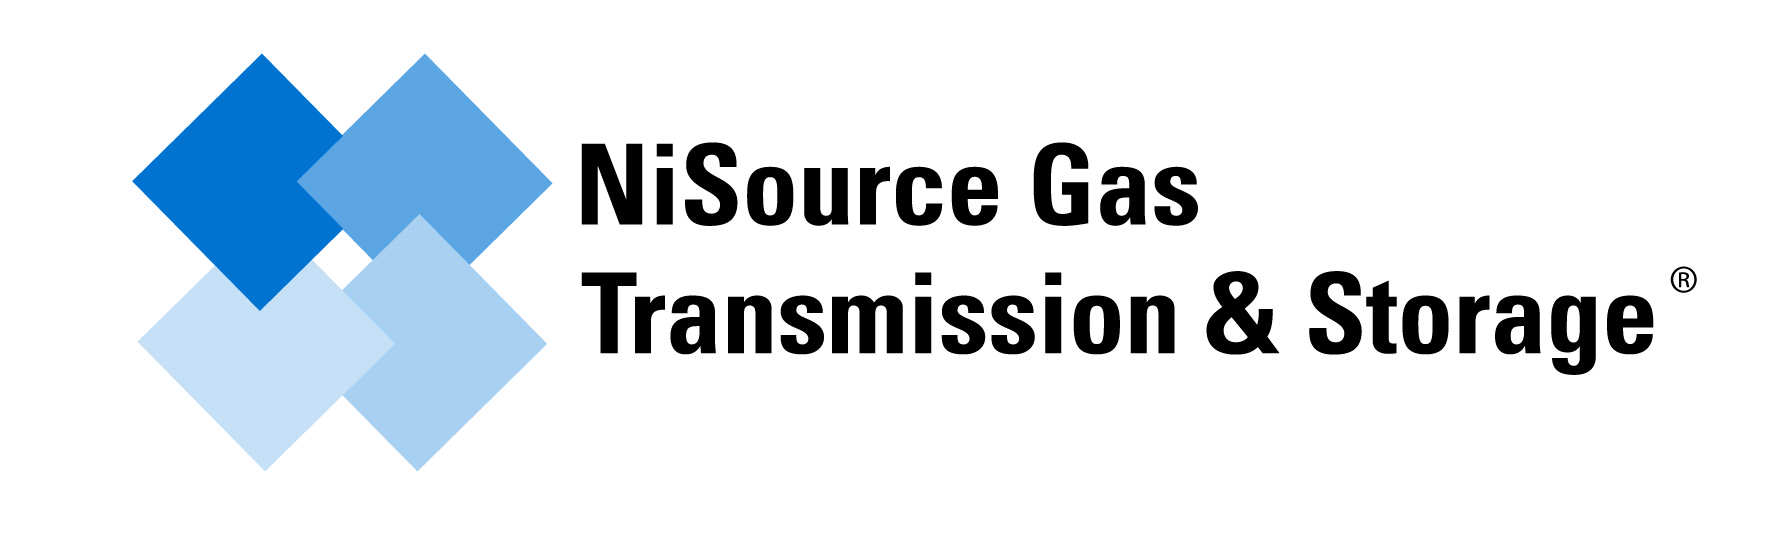 NiSource Gas Trans  Storage 2 color.jpg